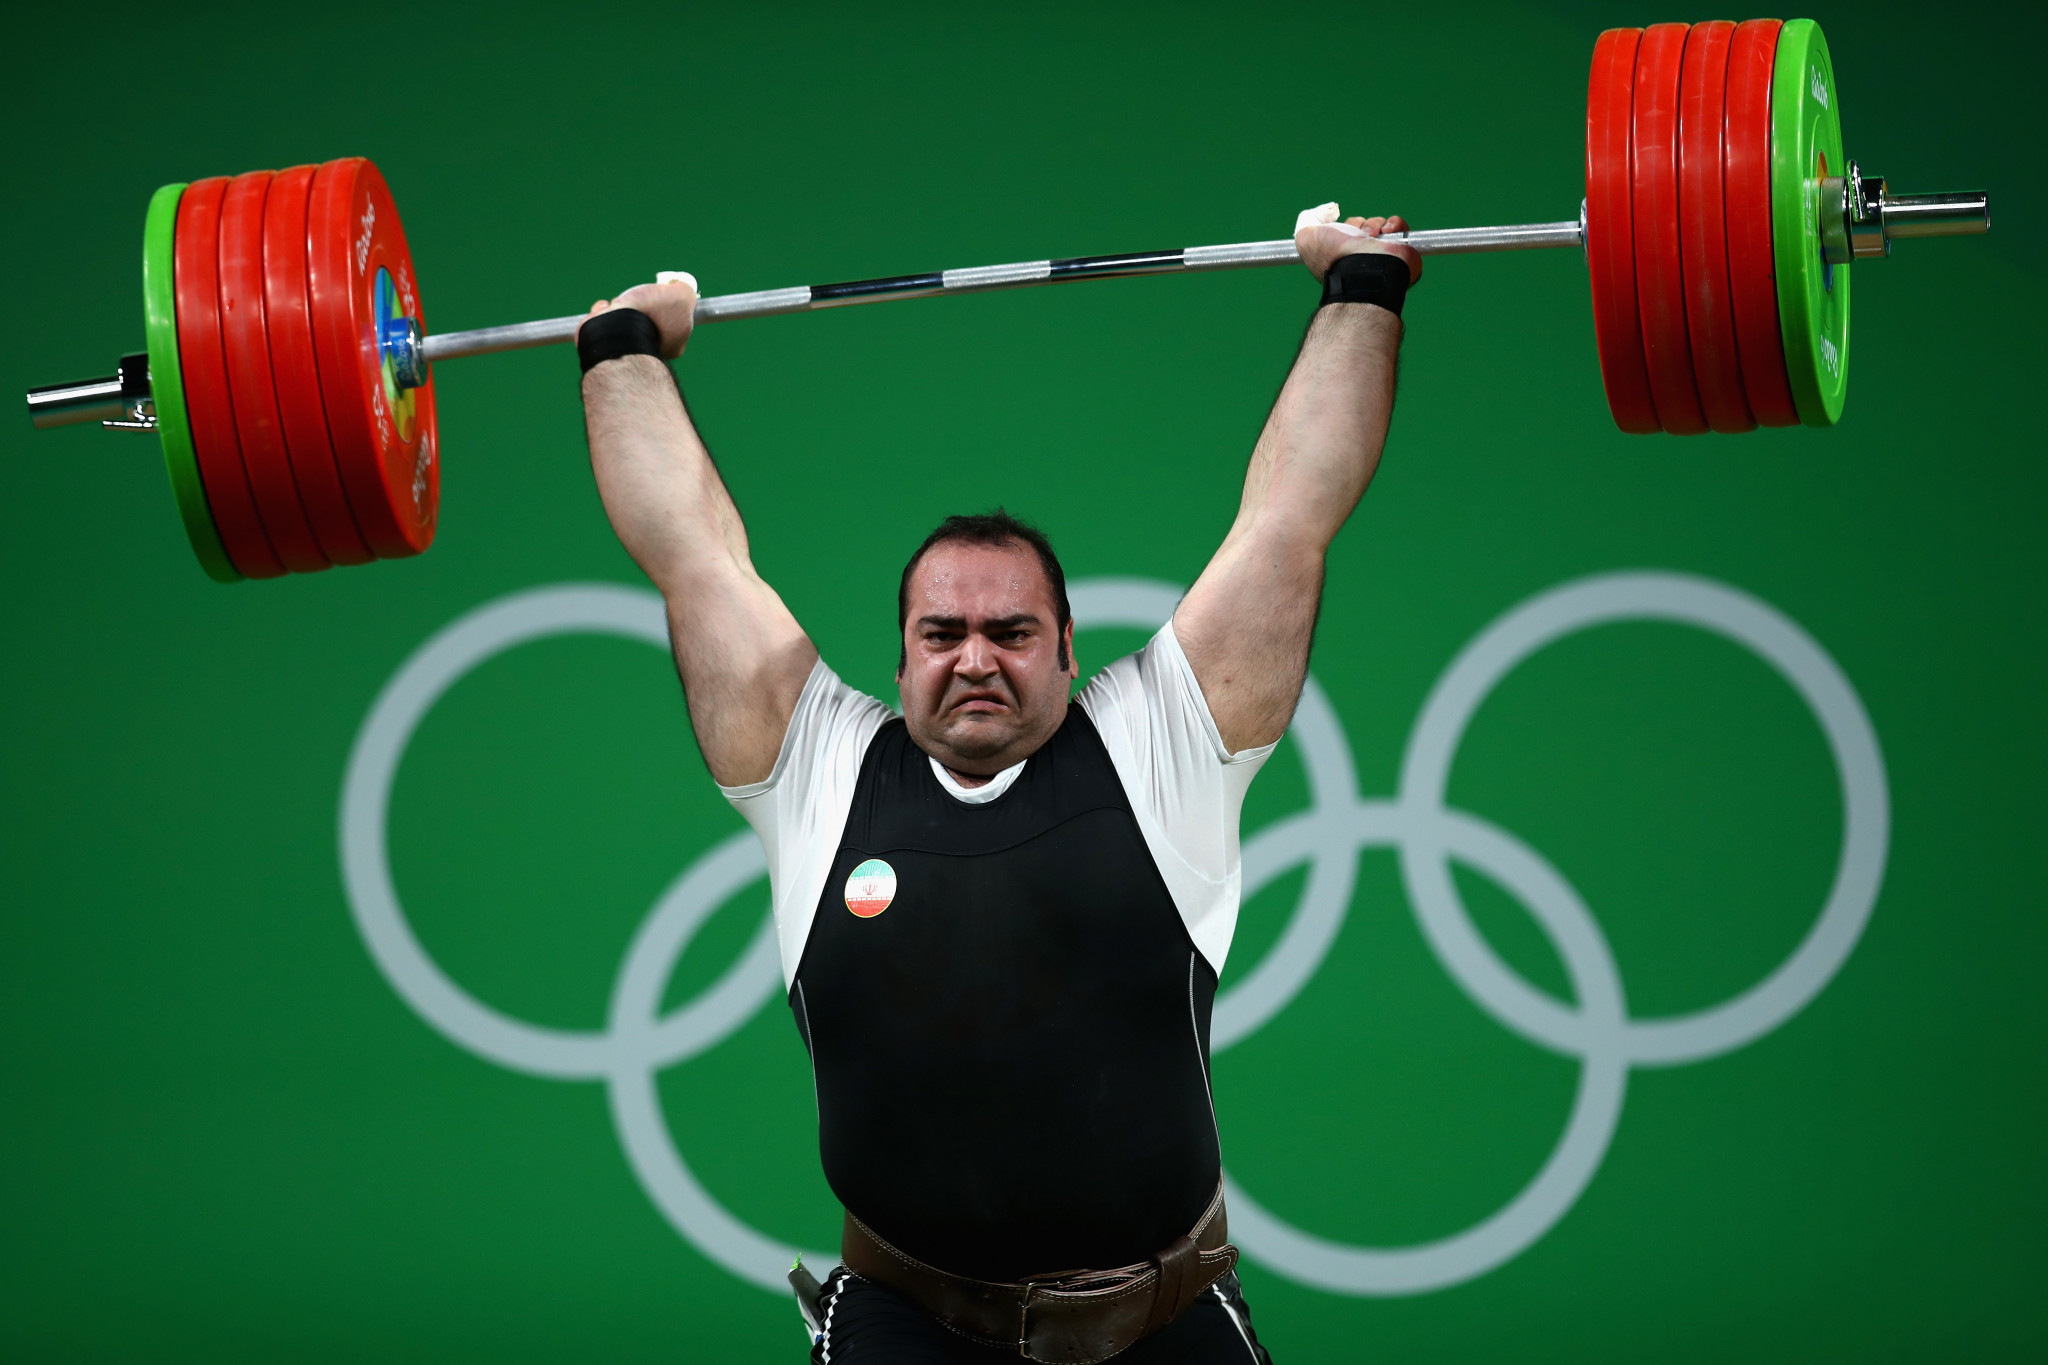 One of Coffa's most vivid memories of Rio 2016 was when Behdad Salimi (above) and his coach protested a